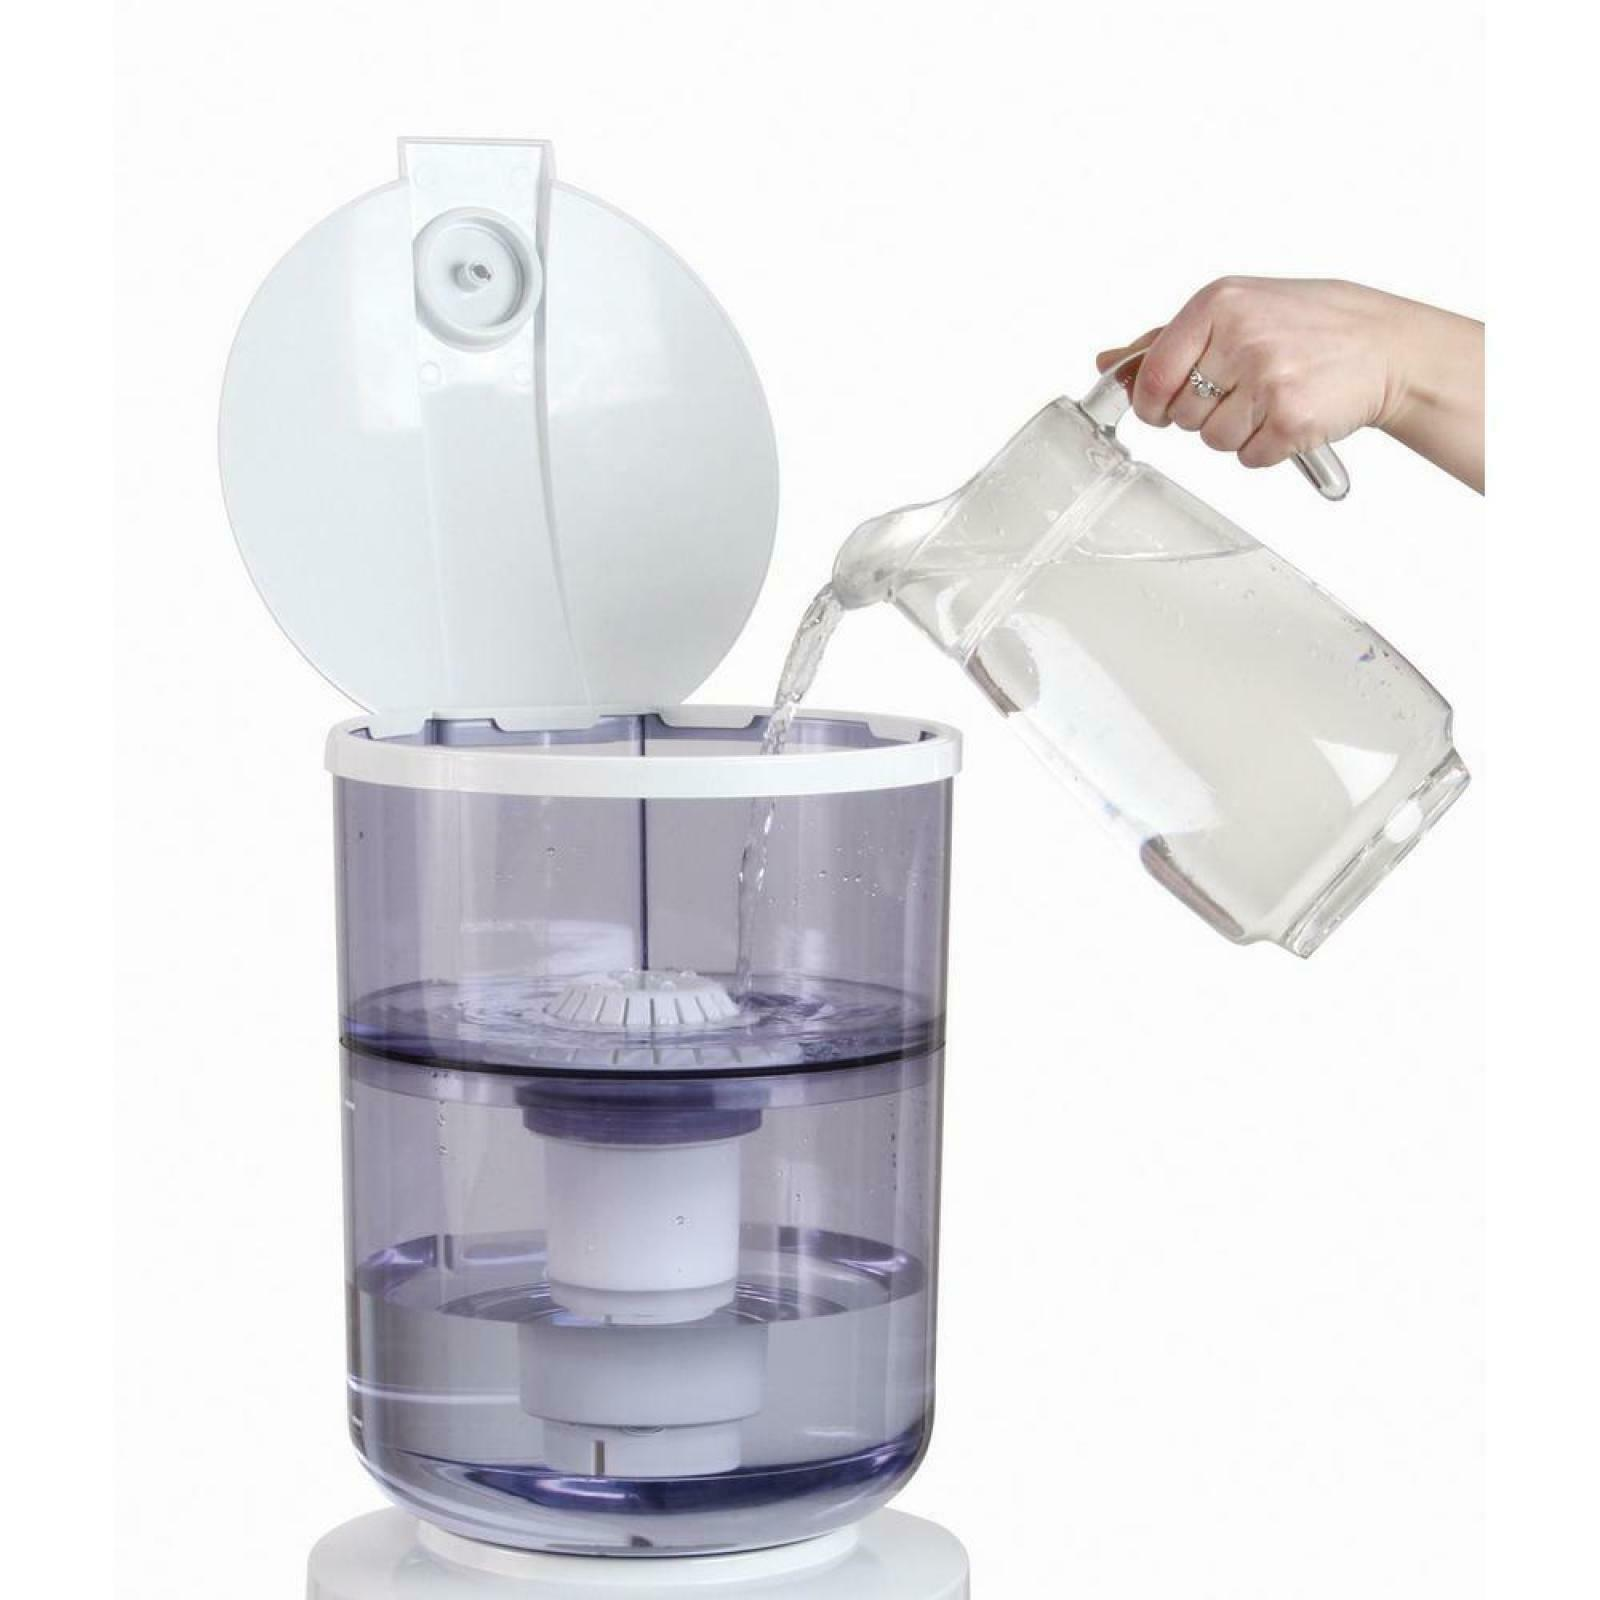 Water GWF8 Tap Water Filter for